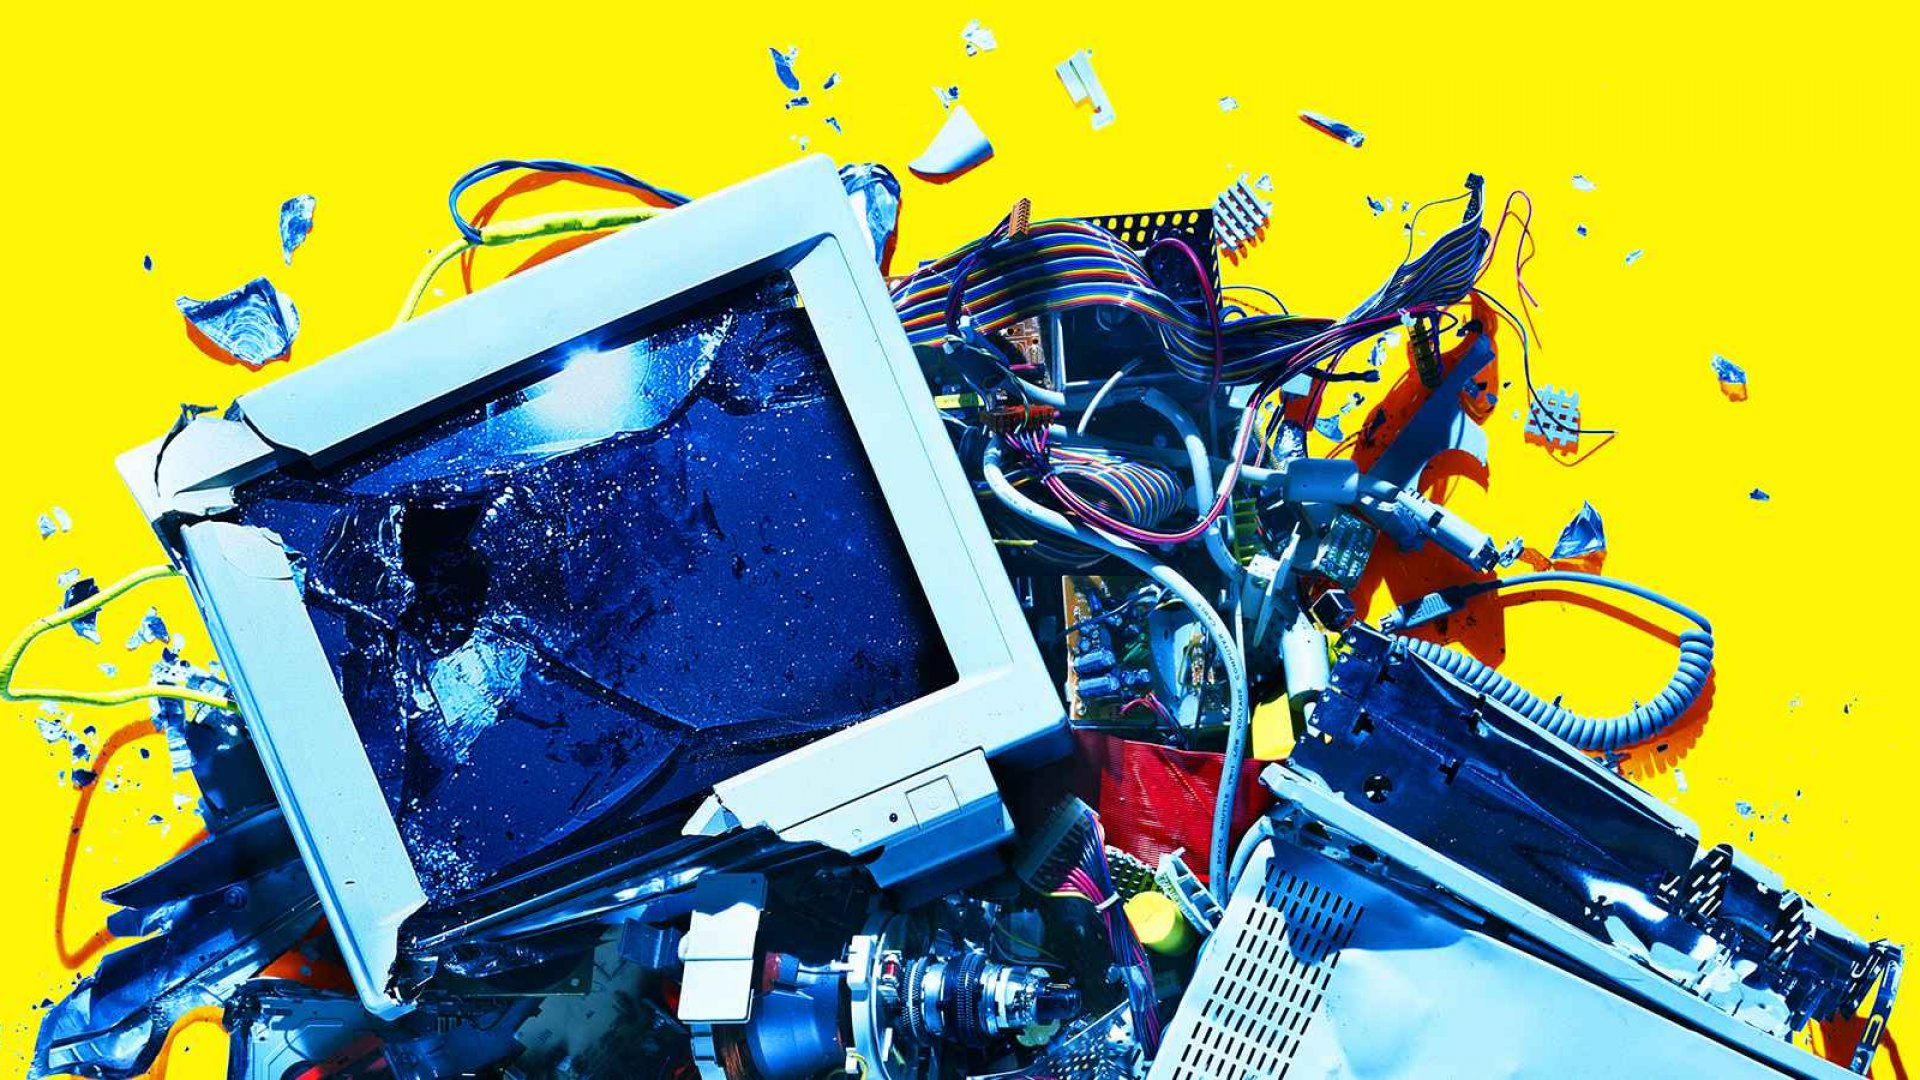 A Simple Tech Failure Could Lose You $440 Million in 30 Minutes. Here's How to Prevent Disaster